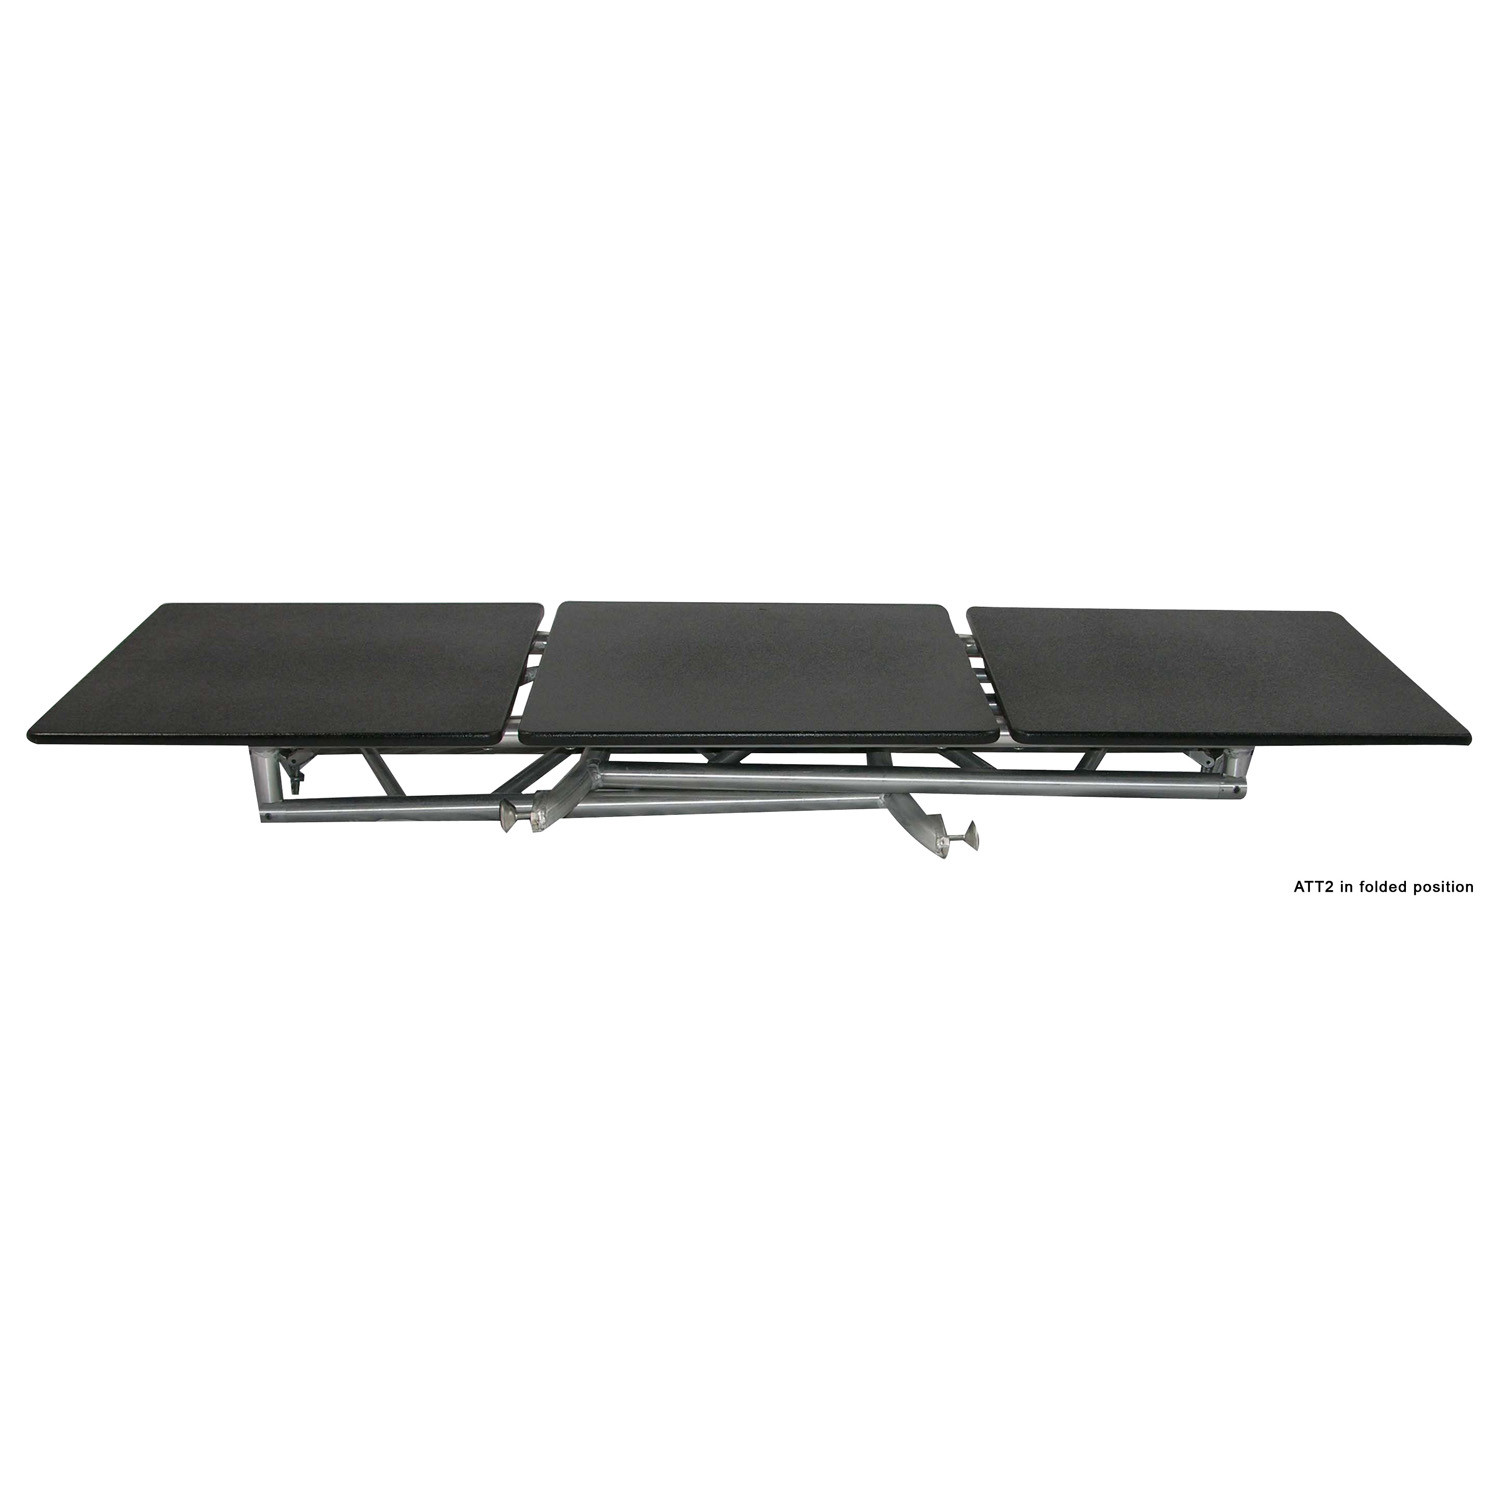 odyssey att2 folding heavy duty truss style dj table new planet dj. Black Bedroom Furniture Sets. Home Design Ideas